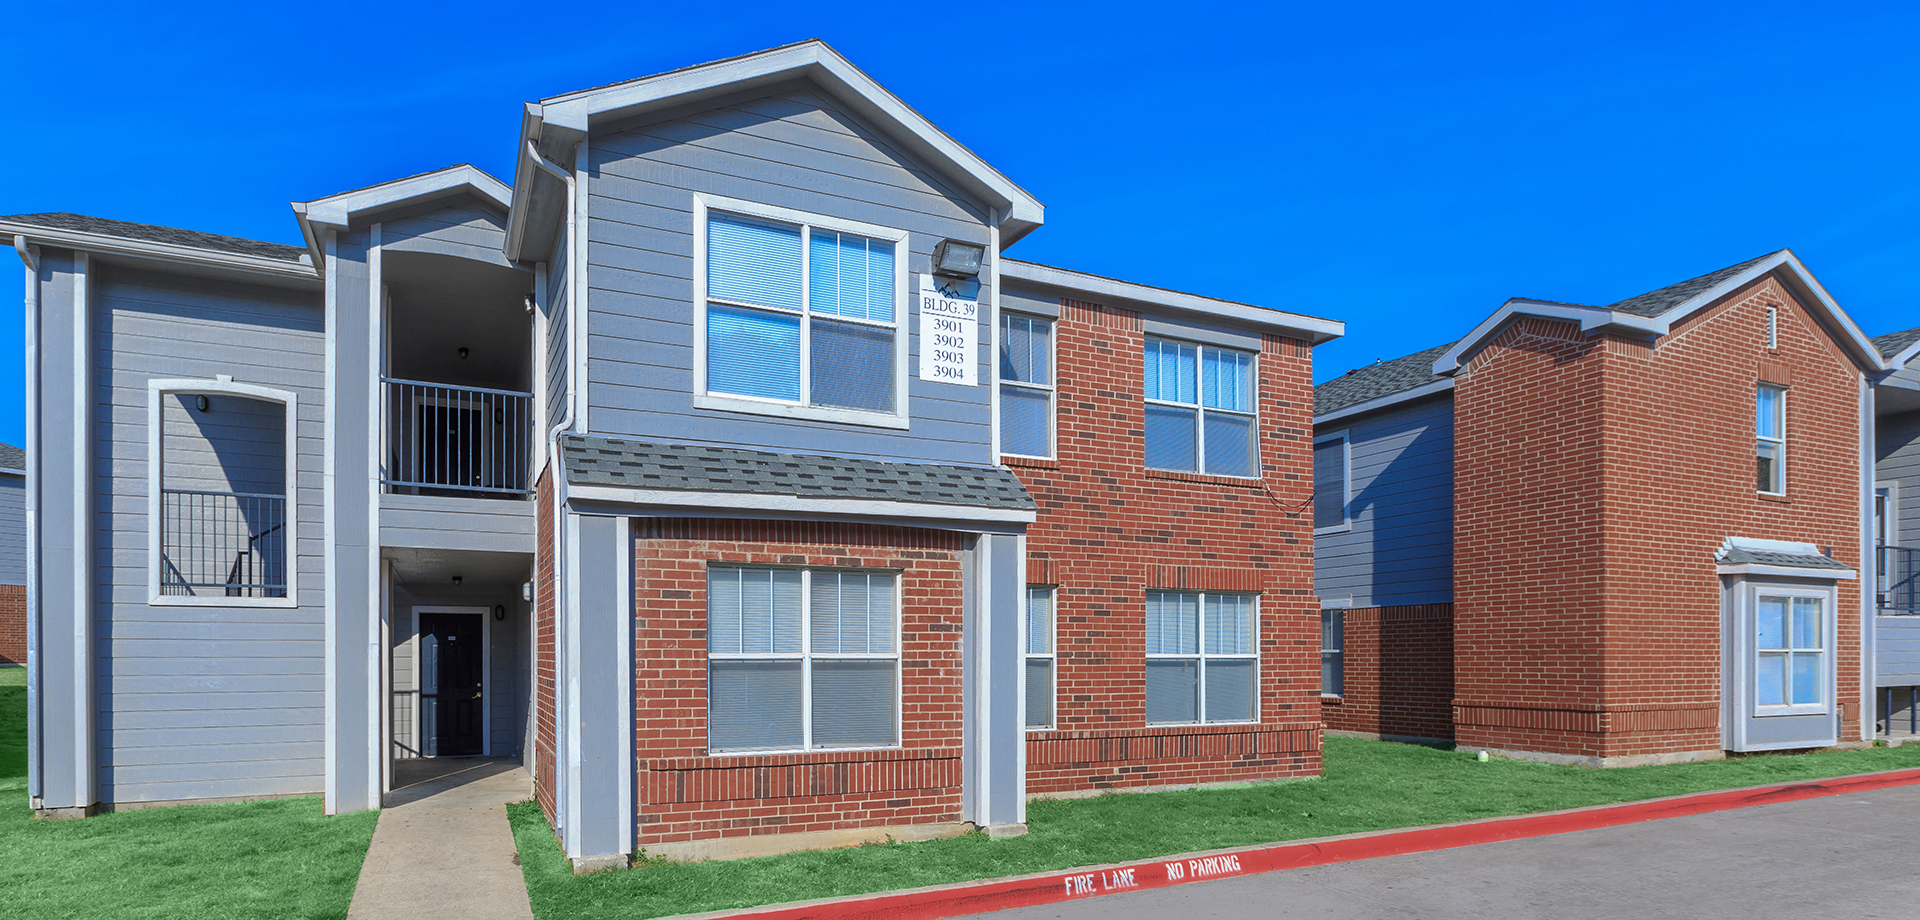 Sorrento appartments villas of sorrento apartments in for 3328 terrace nederland tx